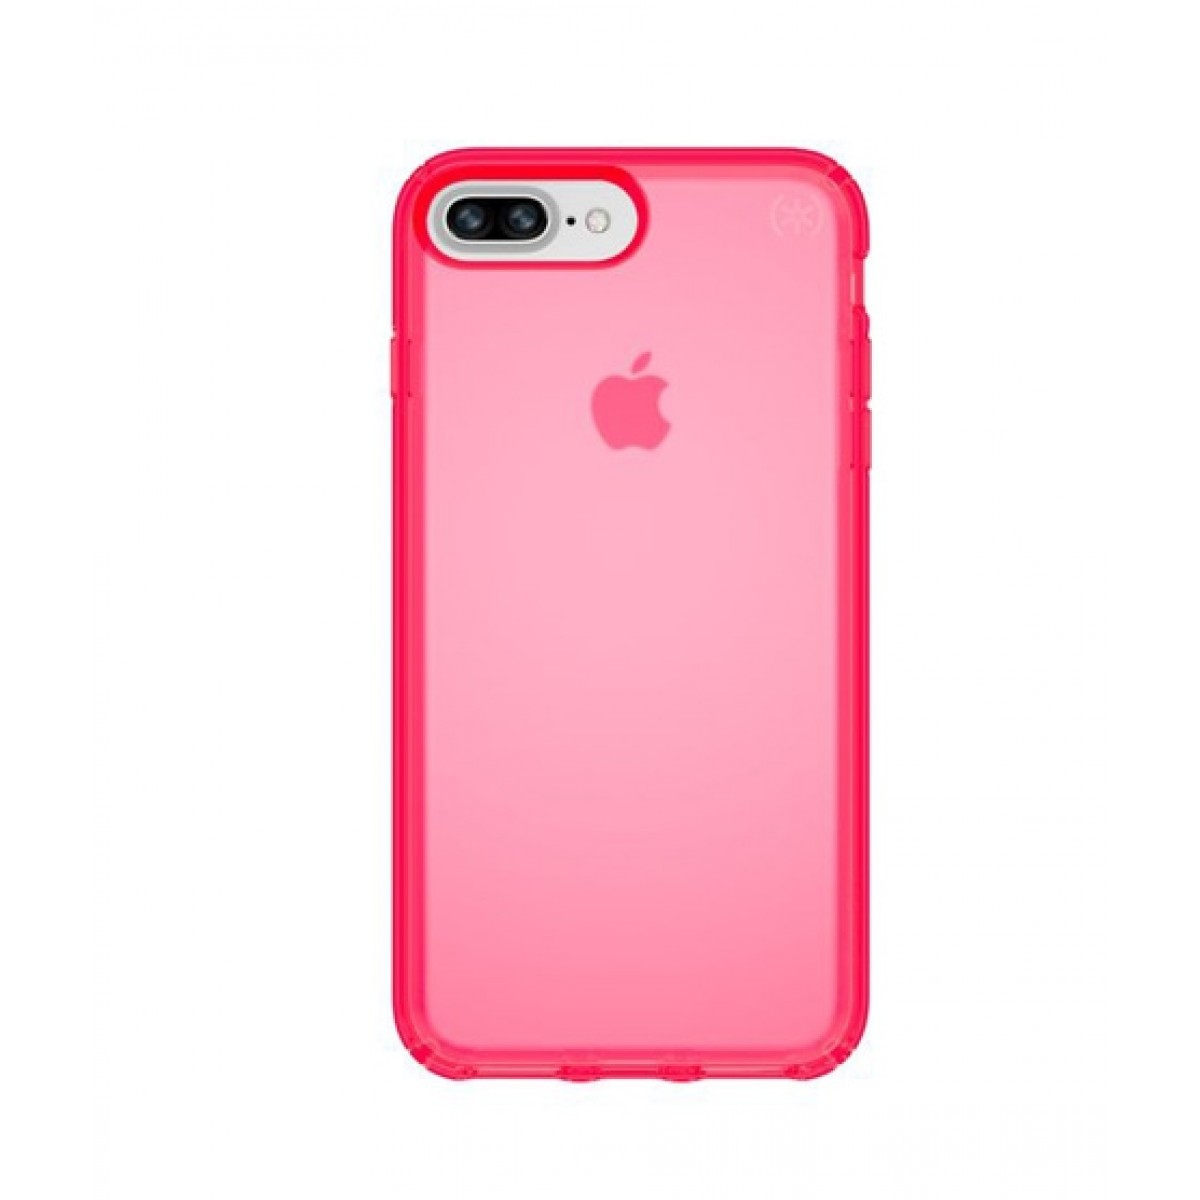 on sale 61e4a b5f68 Speck Presidio Clear Neon Shocking Pink Matte Case For iPhone 8 Plus